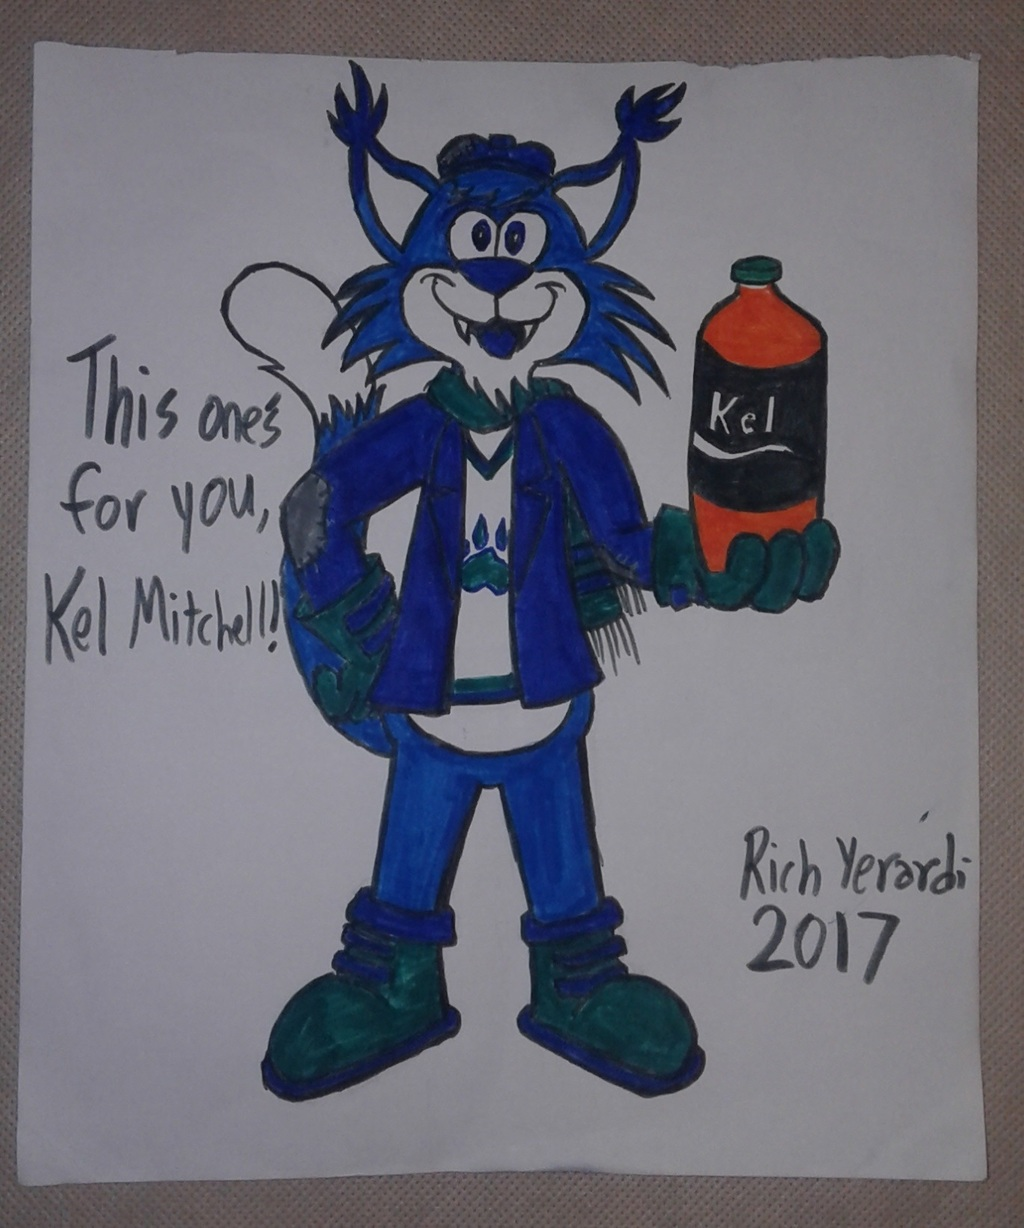 Gift Art For Kel Mitchell